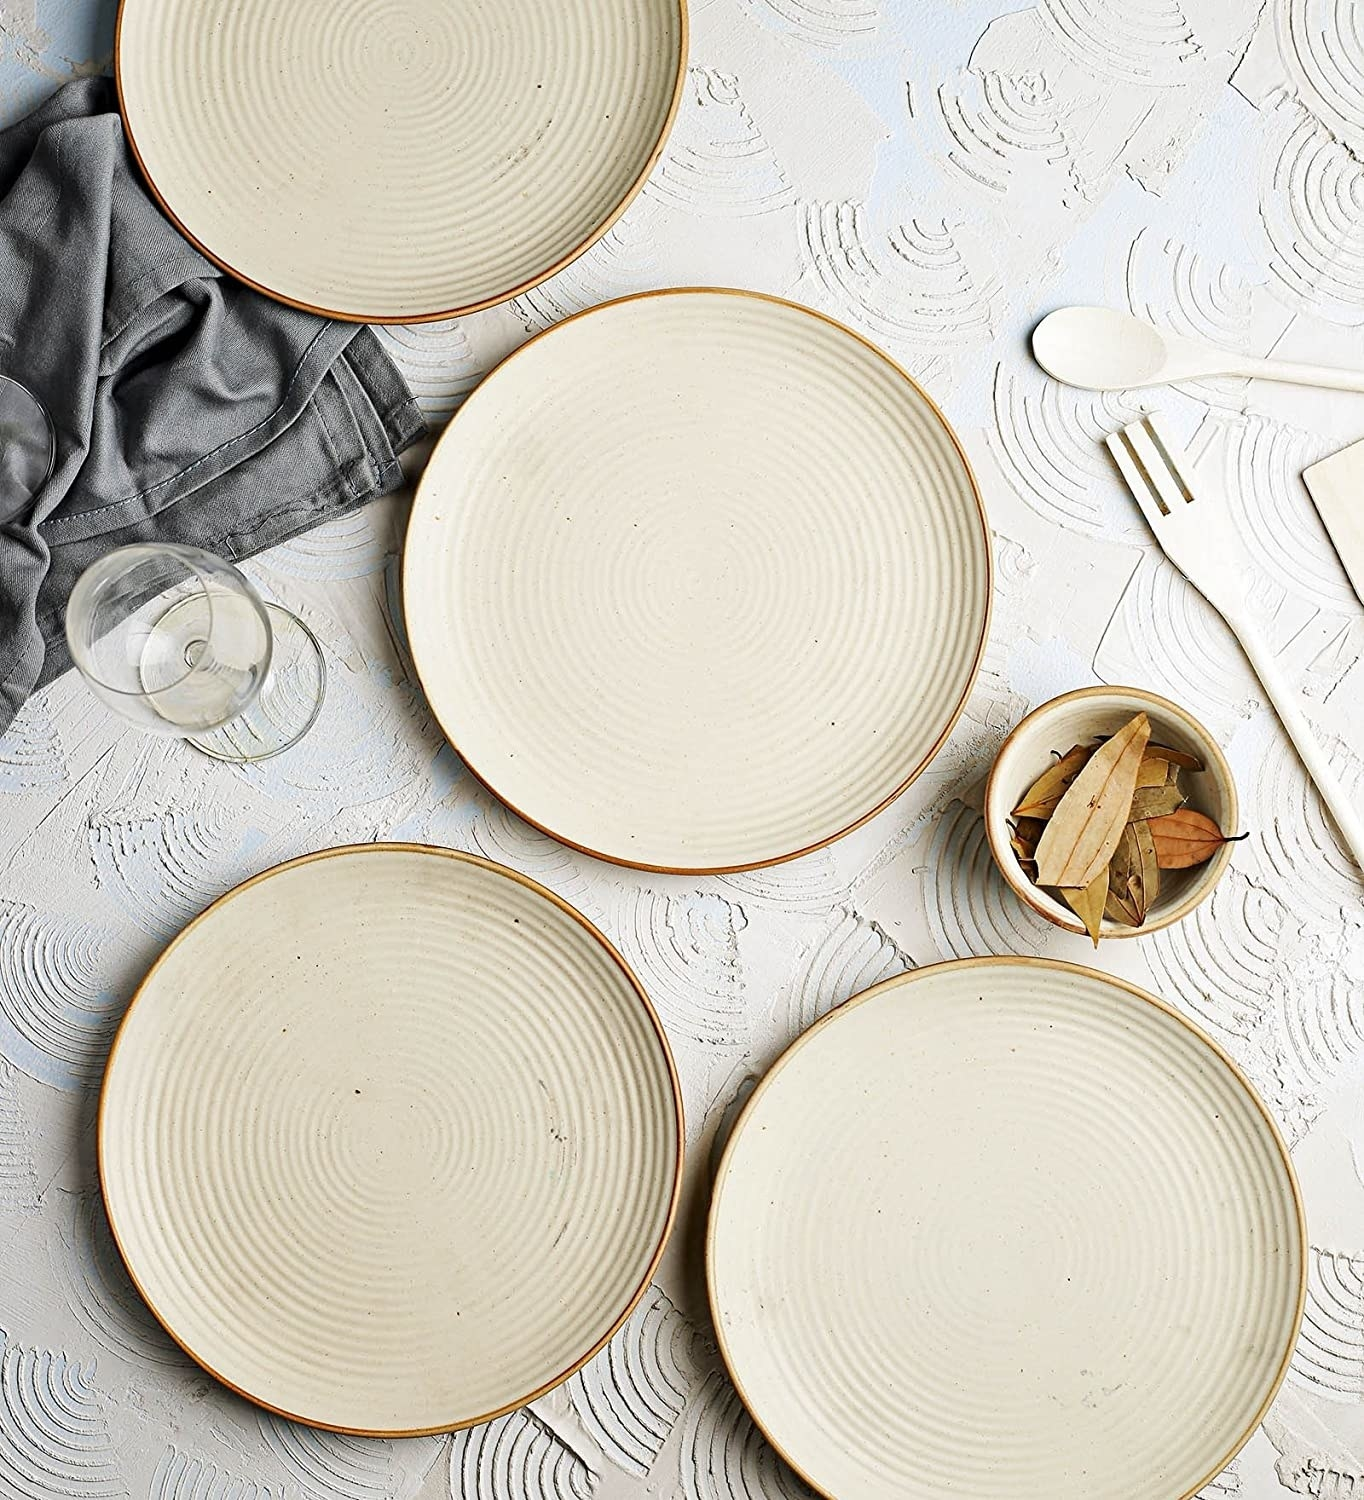 A set of matte plates on a table